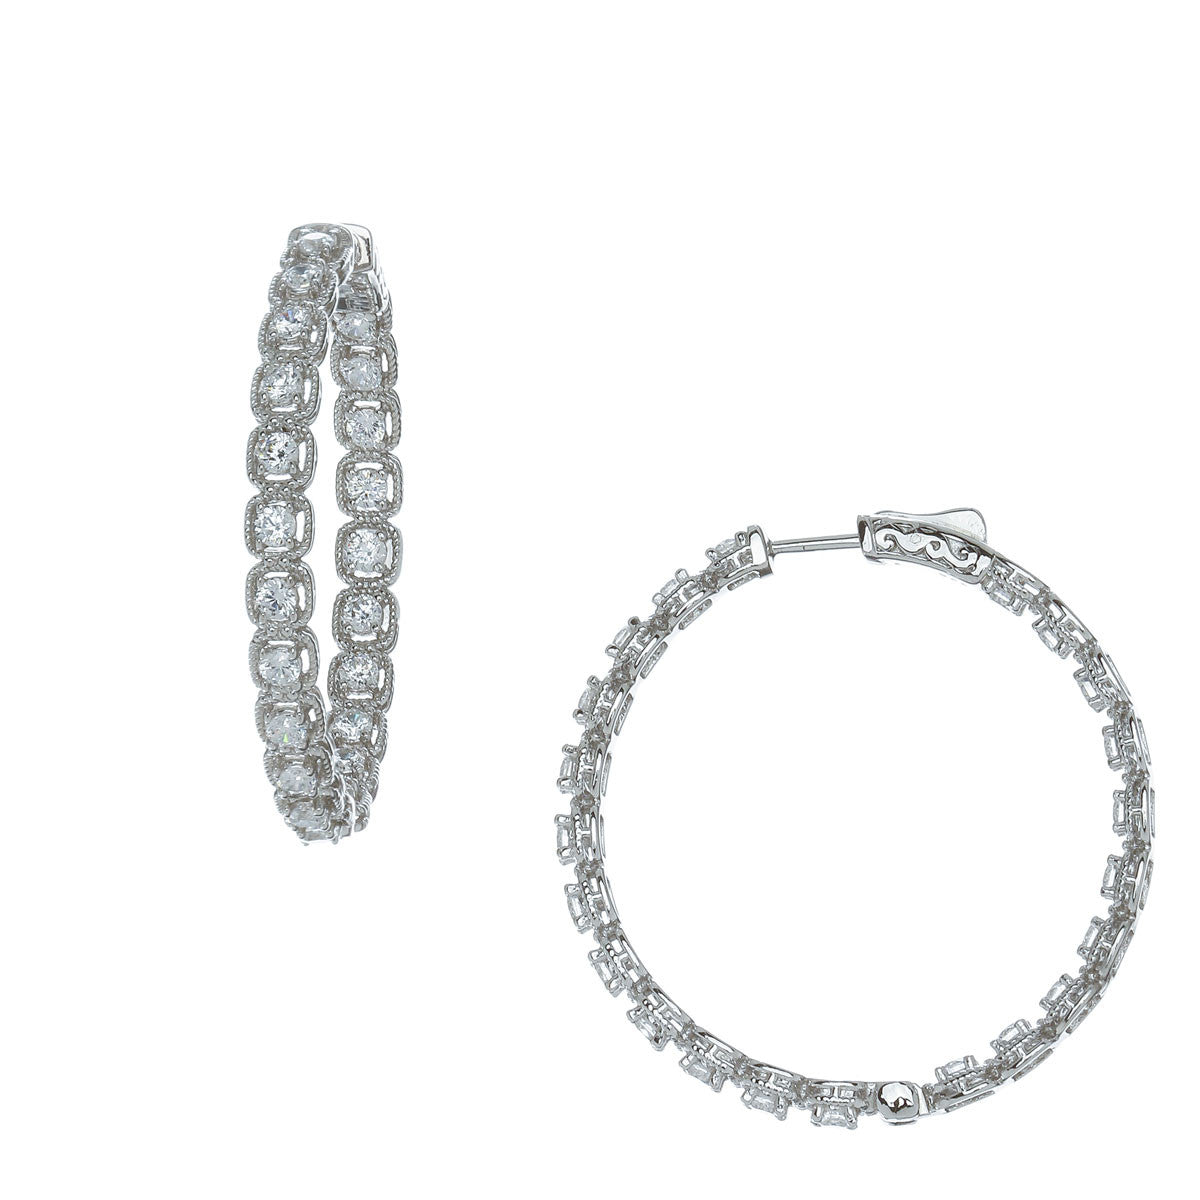 Halo Brilliant Cut Hoop Earrings - The Firestone Collection - Fashion Jewelry & Accessories